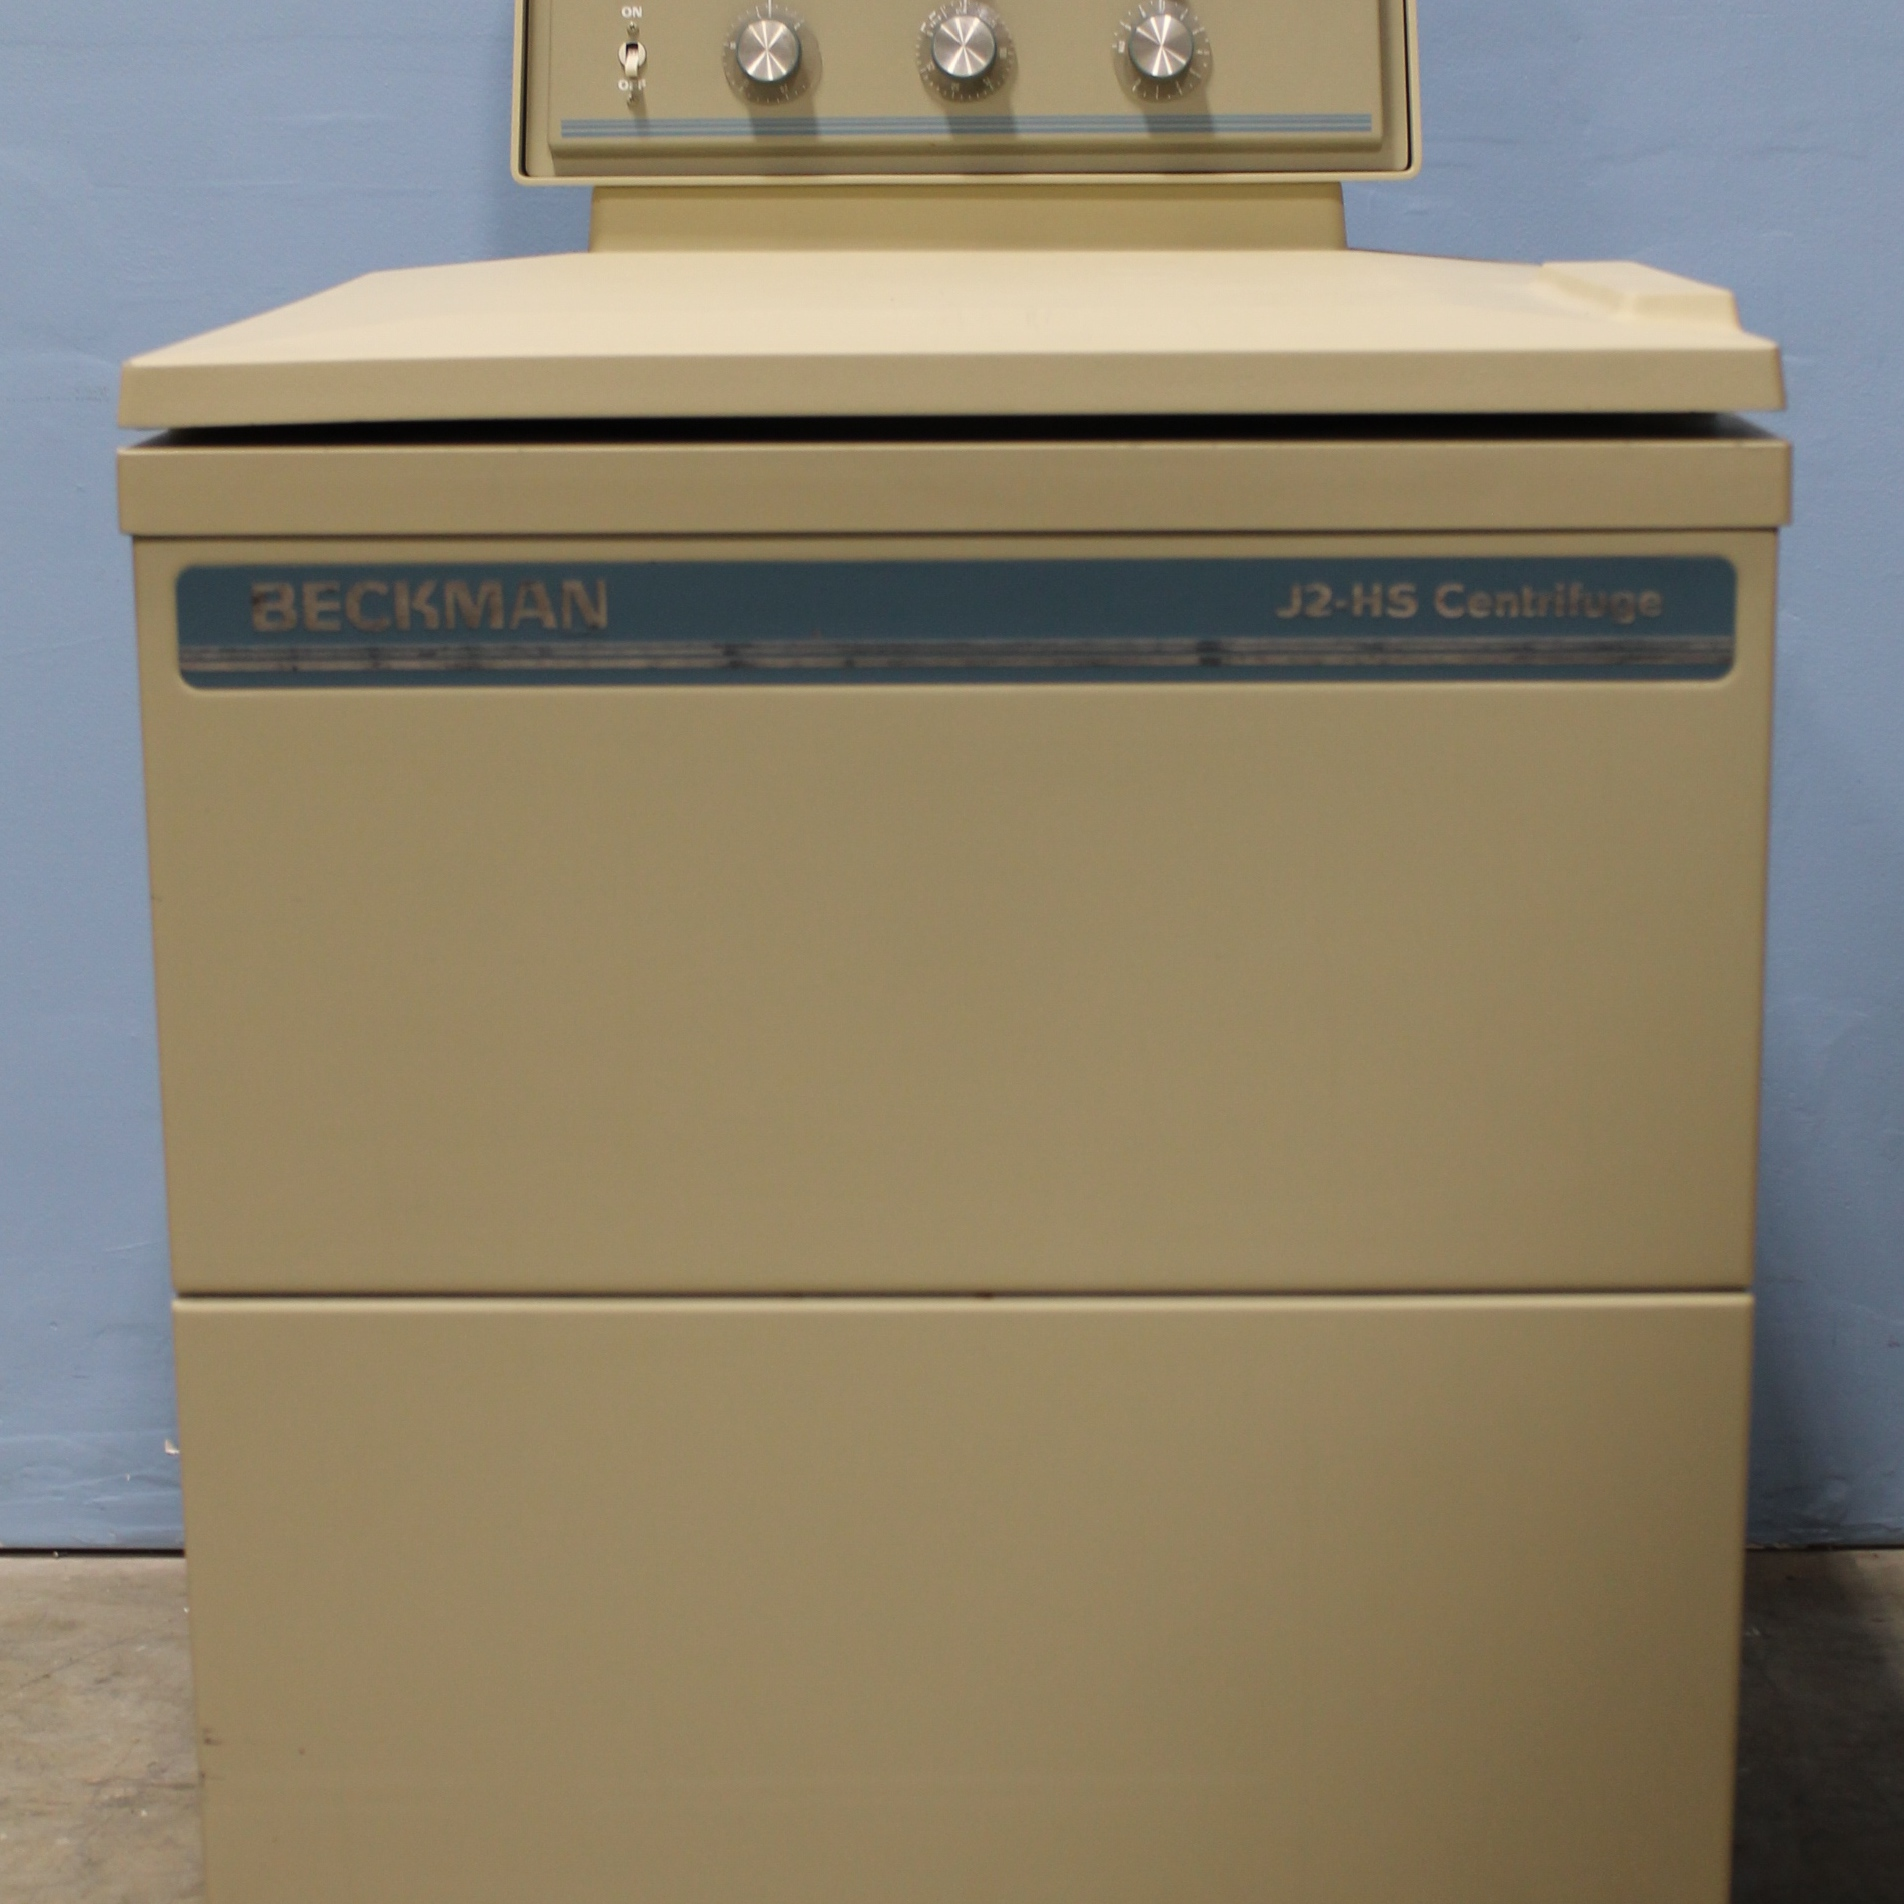 J2-HS High Speed Refrigerated Centrifuge